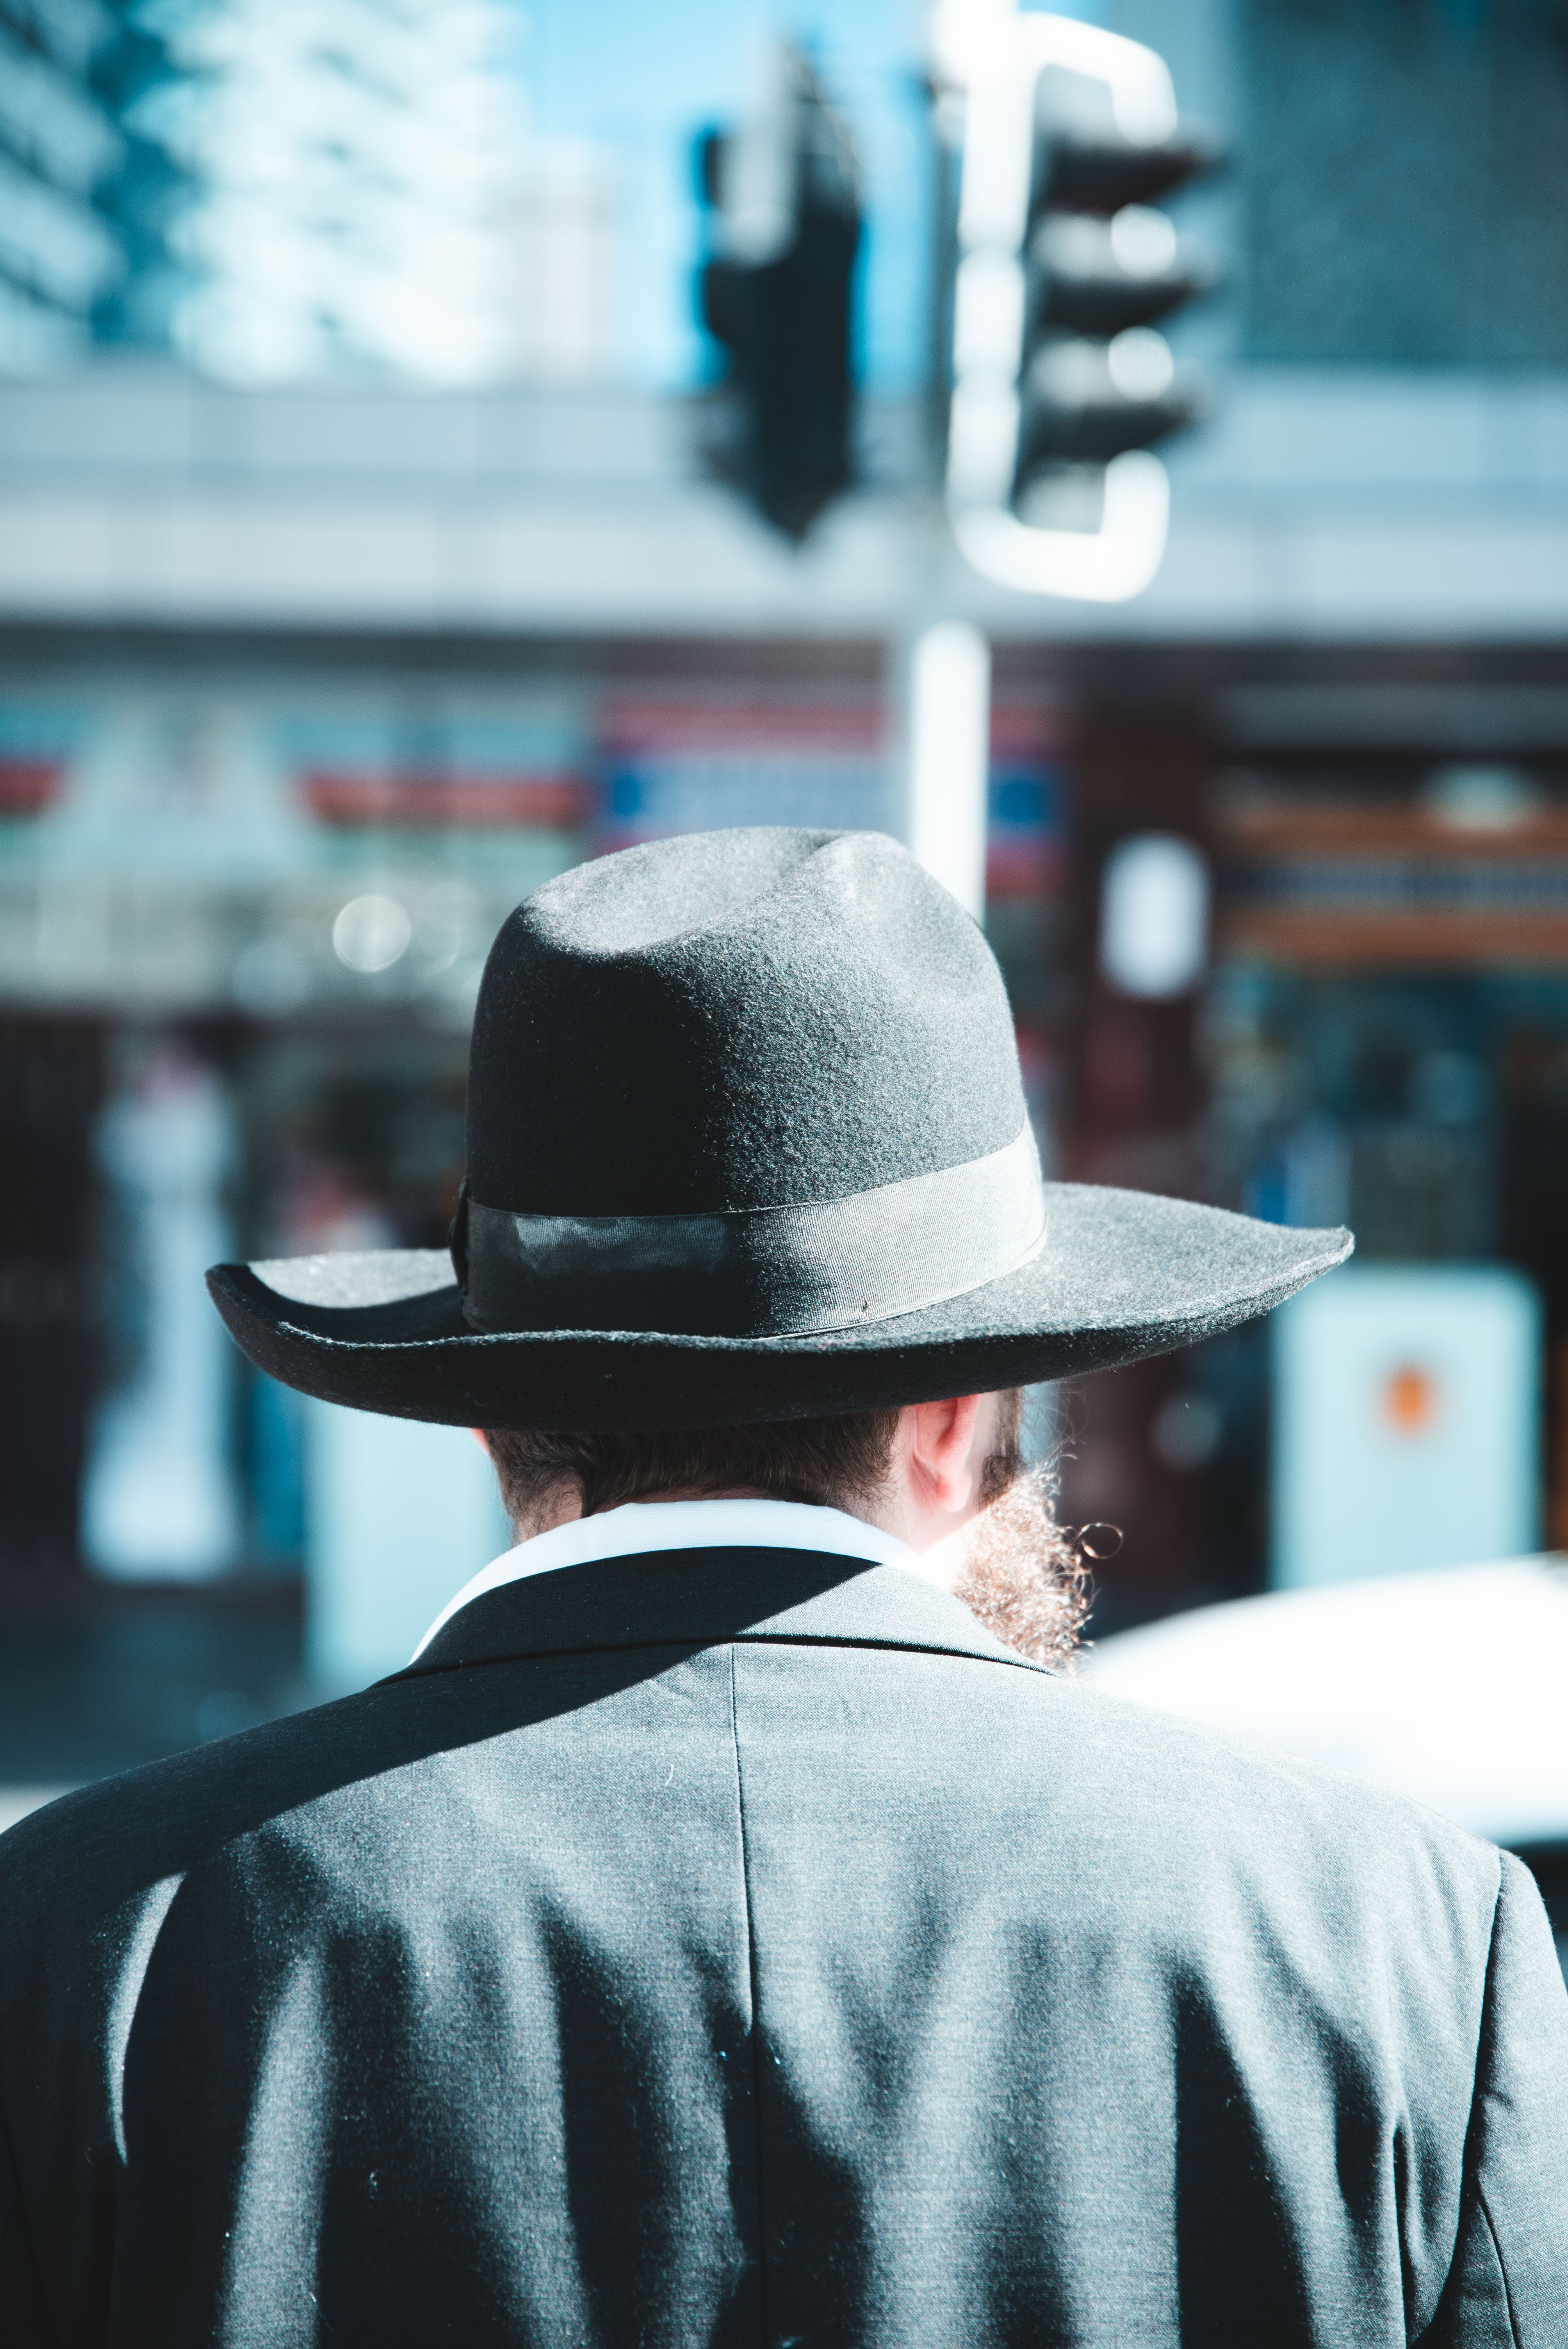 Selective Focus Photography Of Man Wearing Fedora Hat